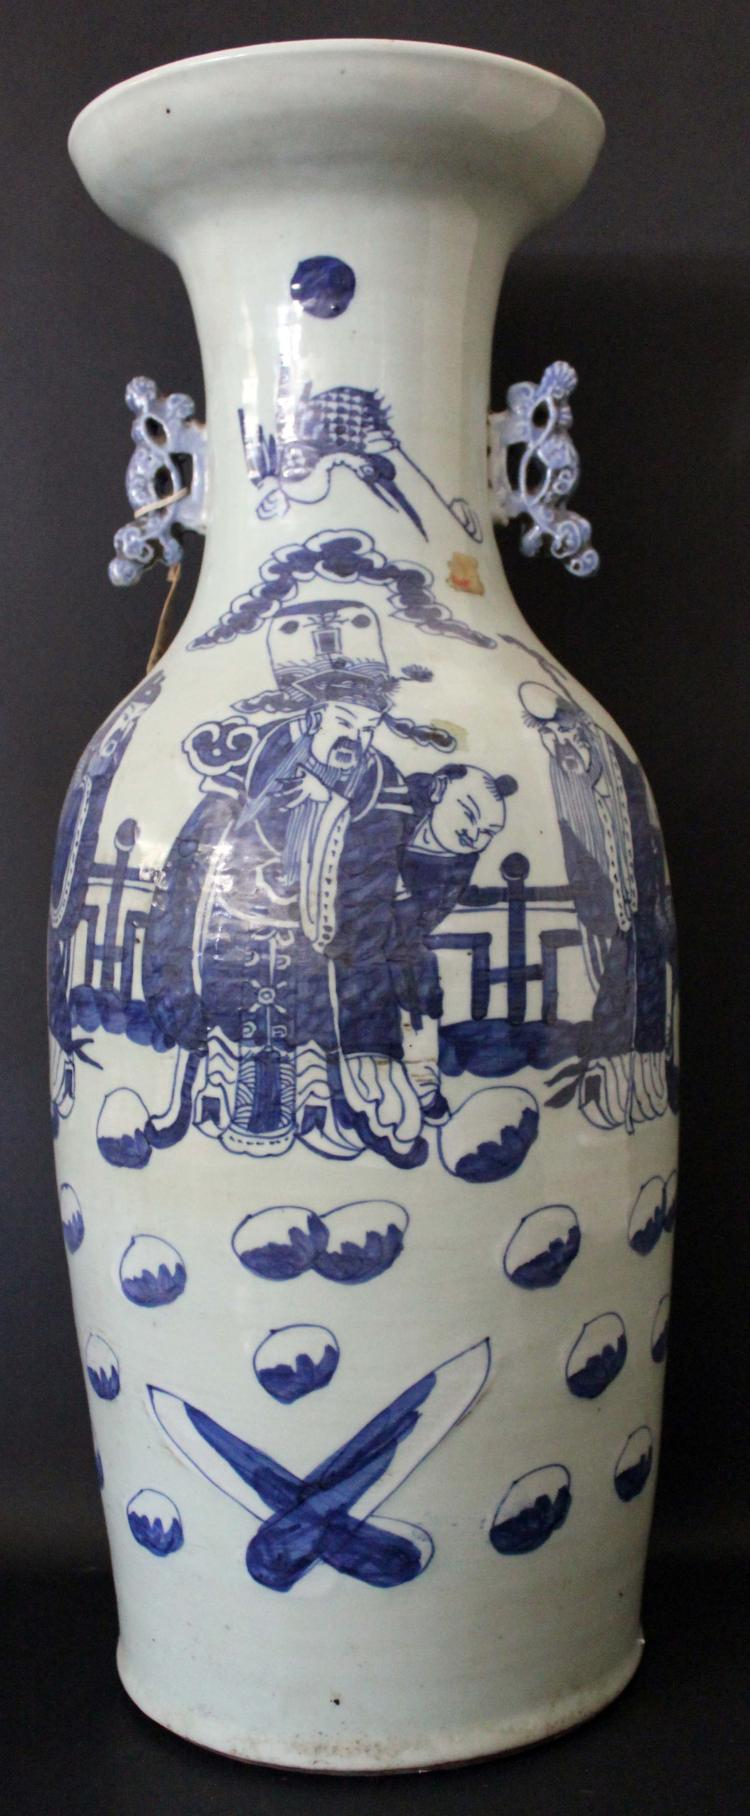 A LARGE CHINESE PORCELAIN VASE, 19TH CENTURY